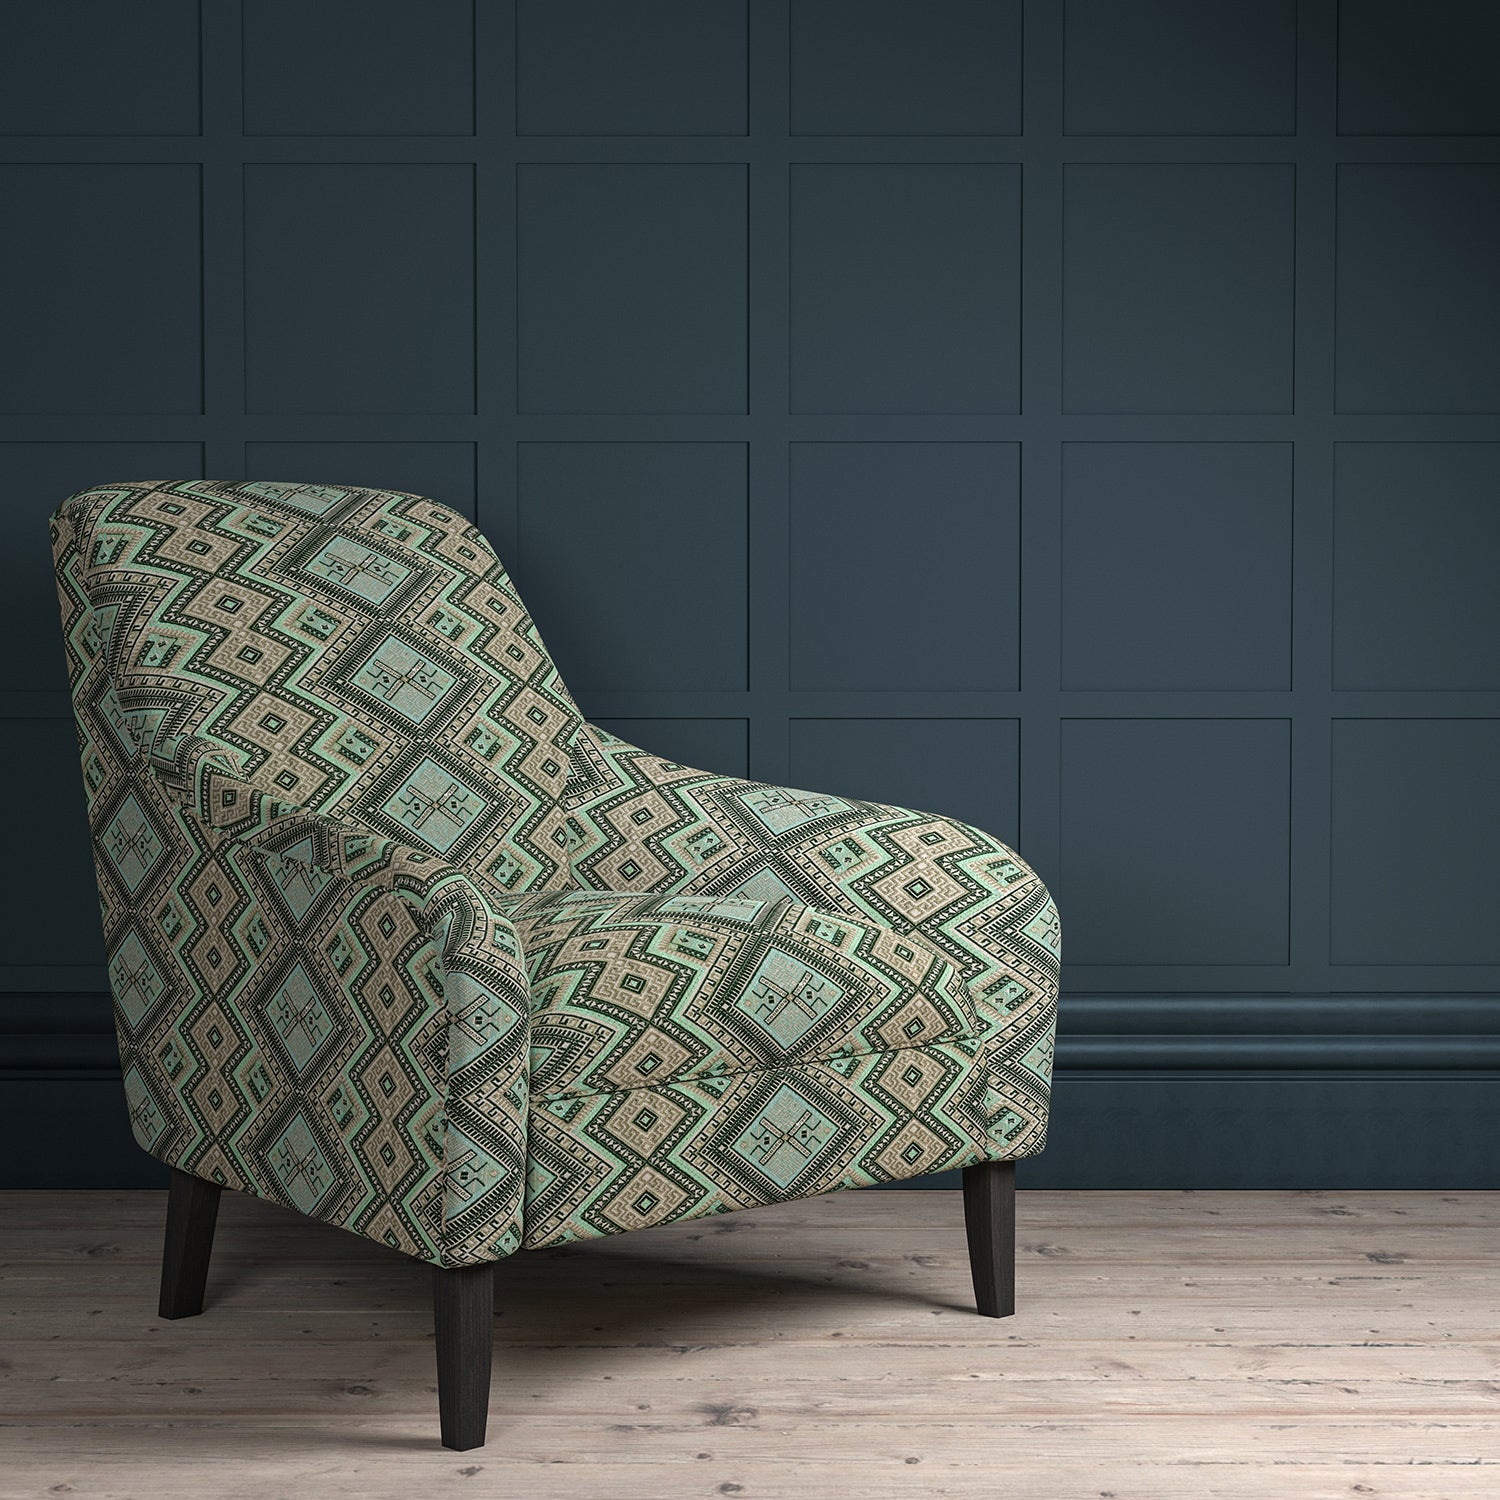 Chair upholstered in a aqua coloured geometric upholstery fabric